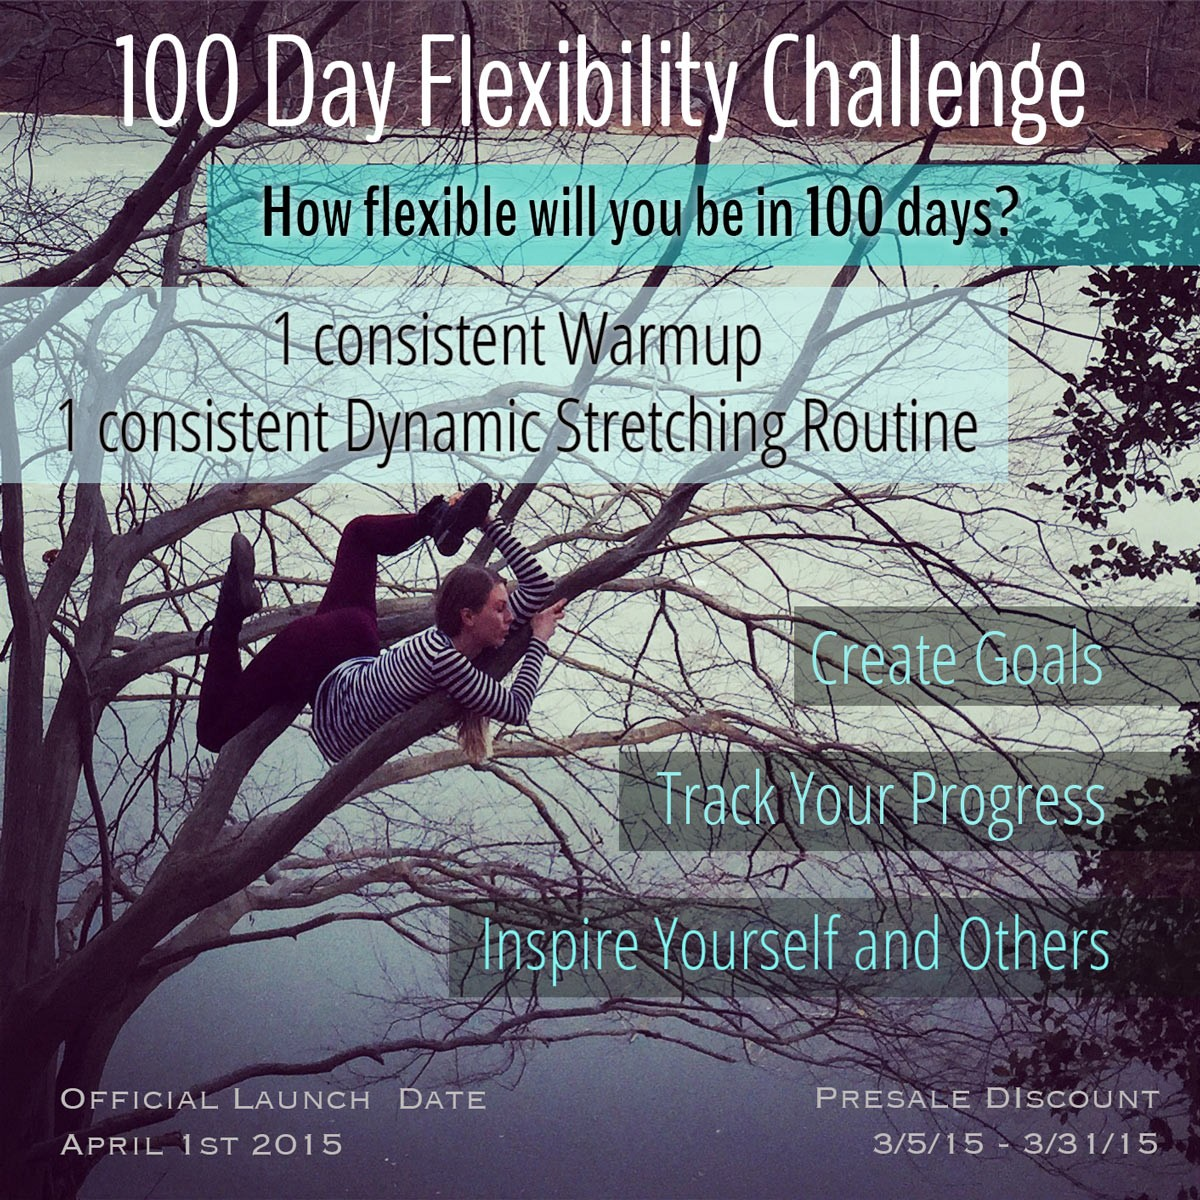 100 Day Flexibility Challenge